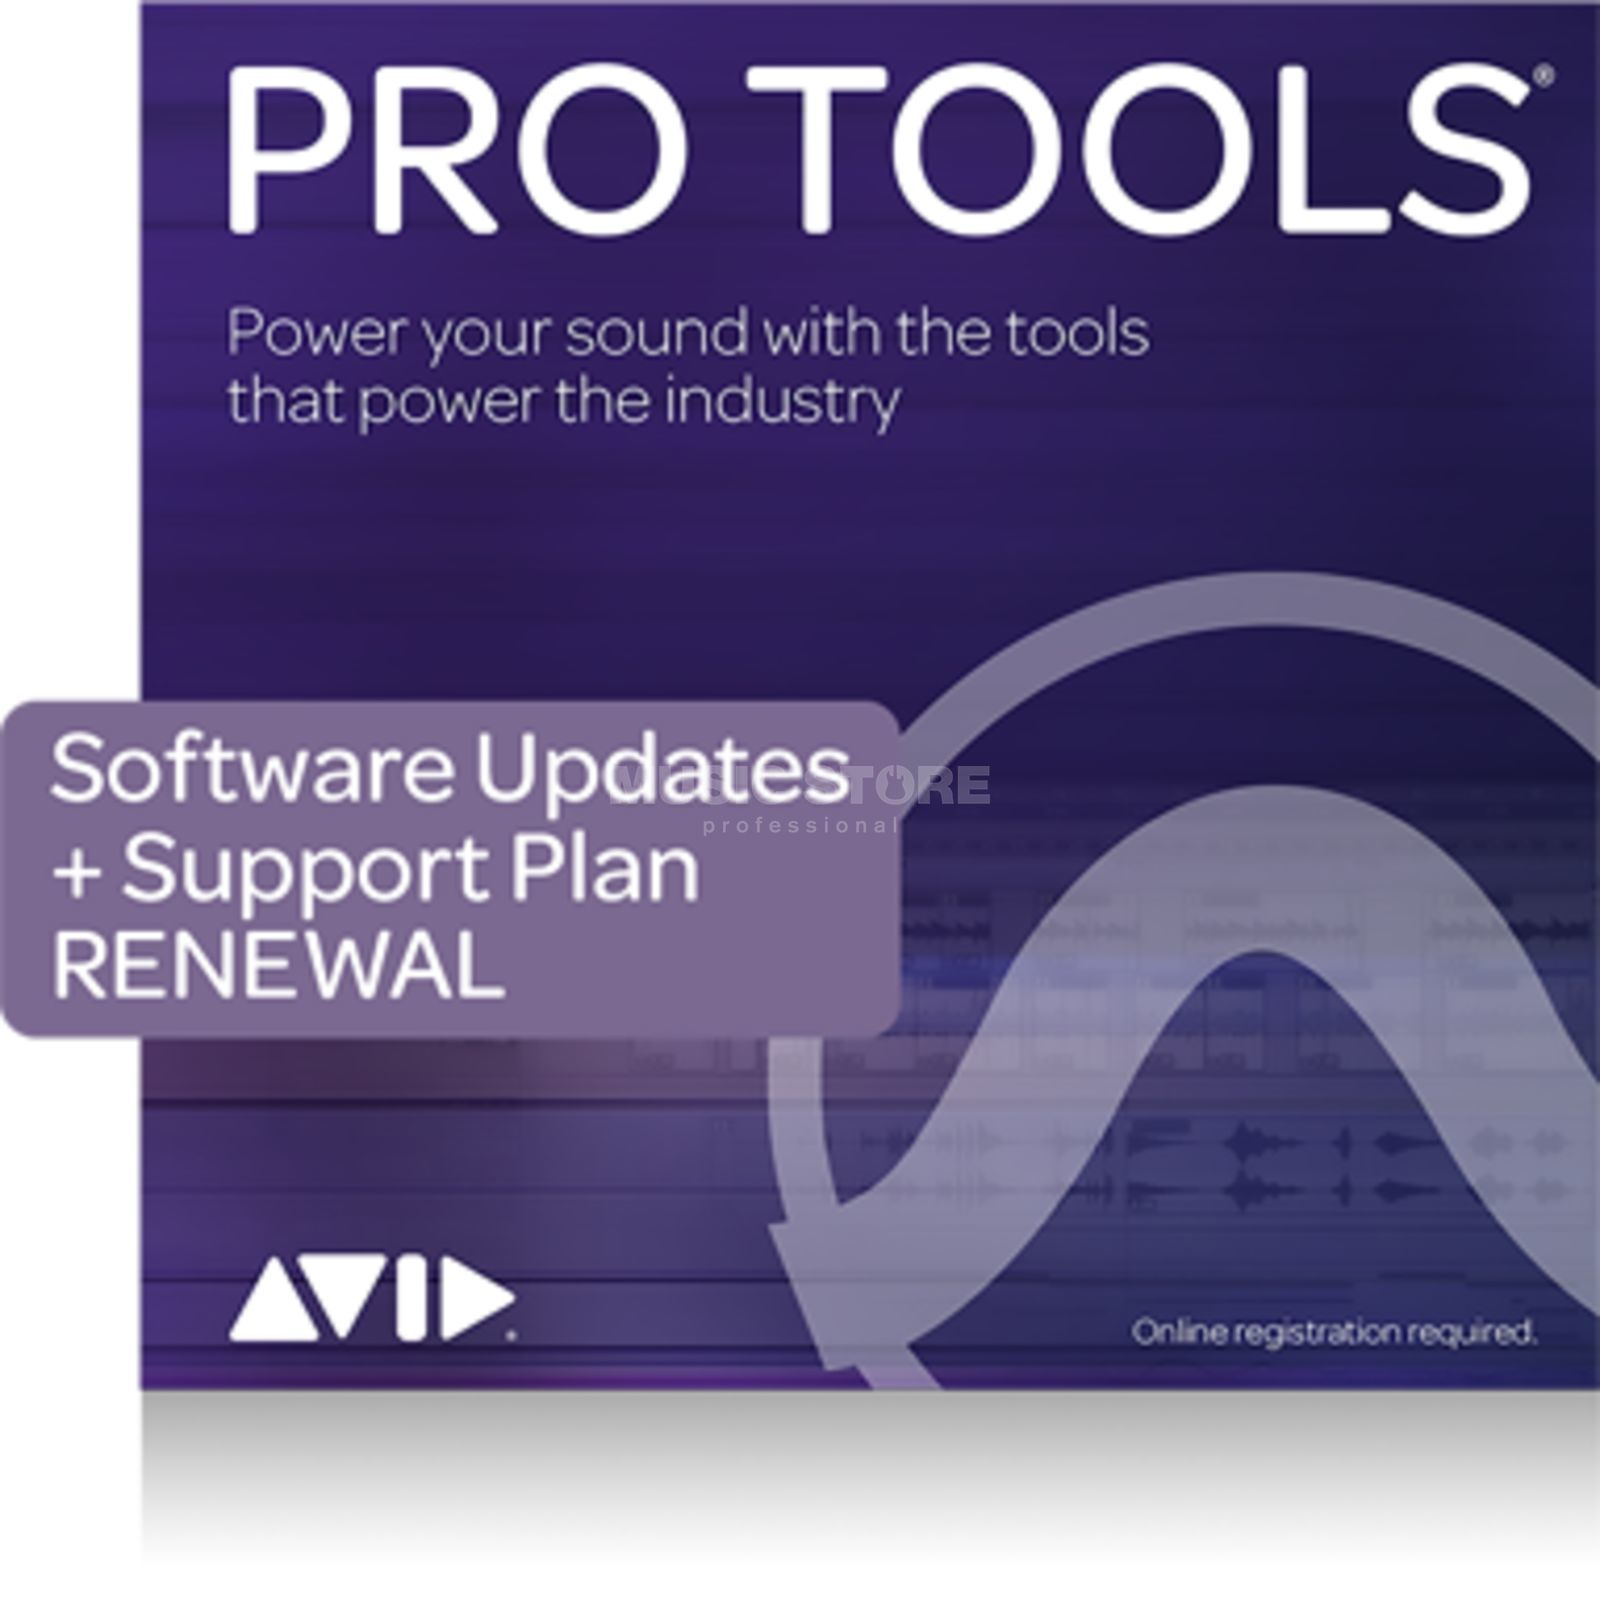 Avid Pro Tools Upgrade Plan 12 Months Renewal Product Image